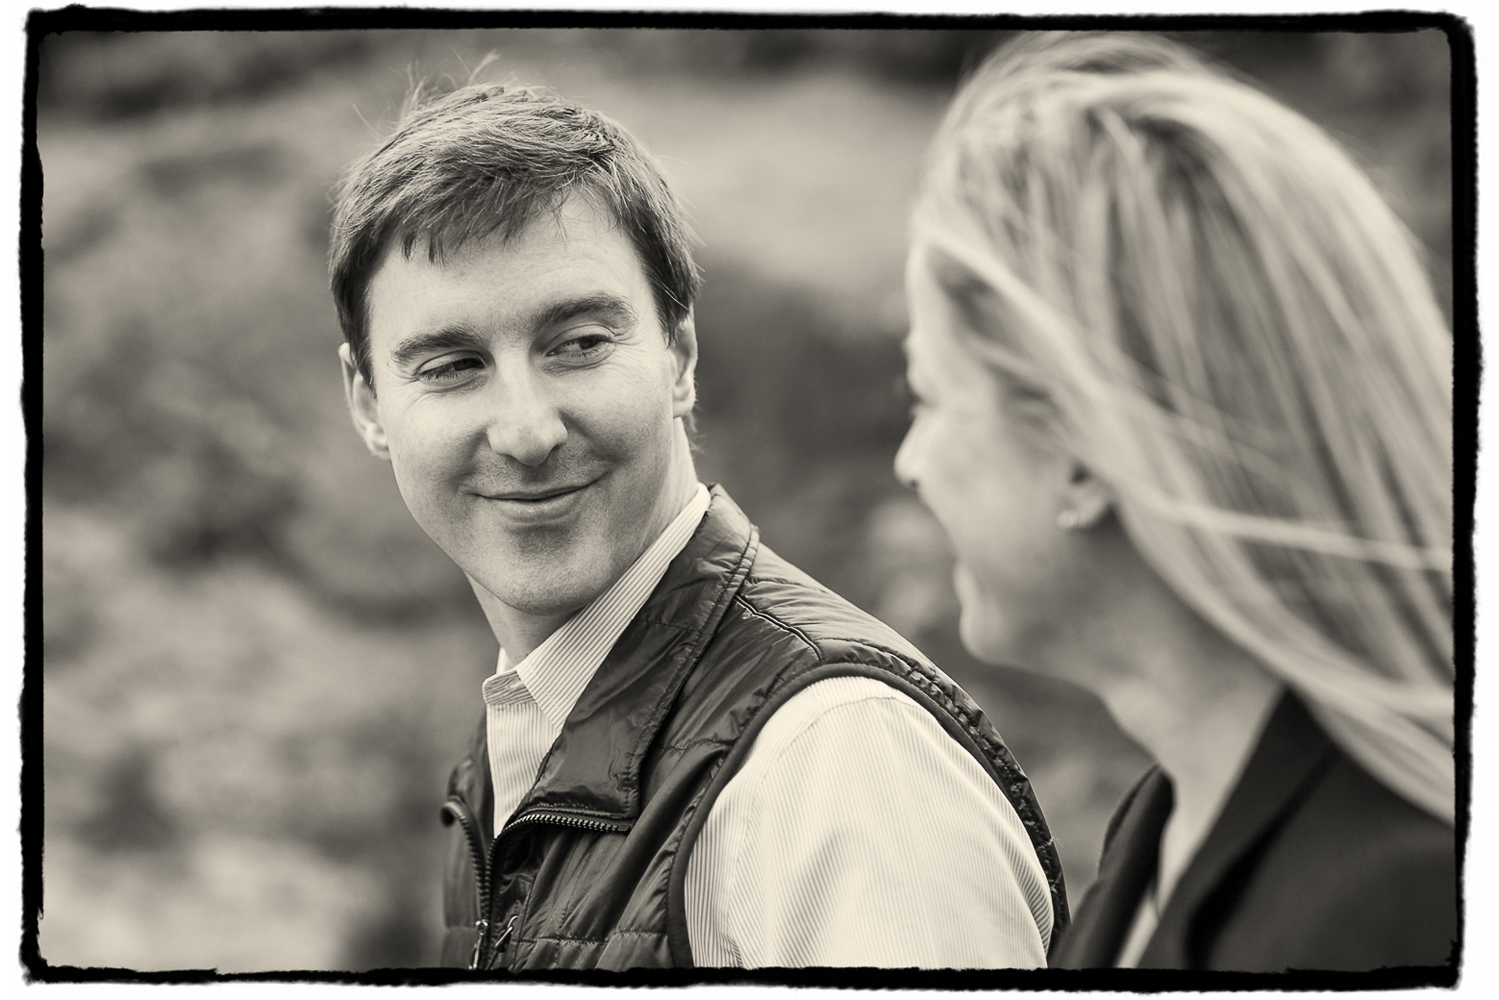 Engagement Portraits: Tim gives Noelle a loving look as they walk through Central Park.